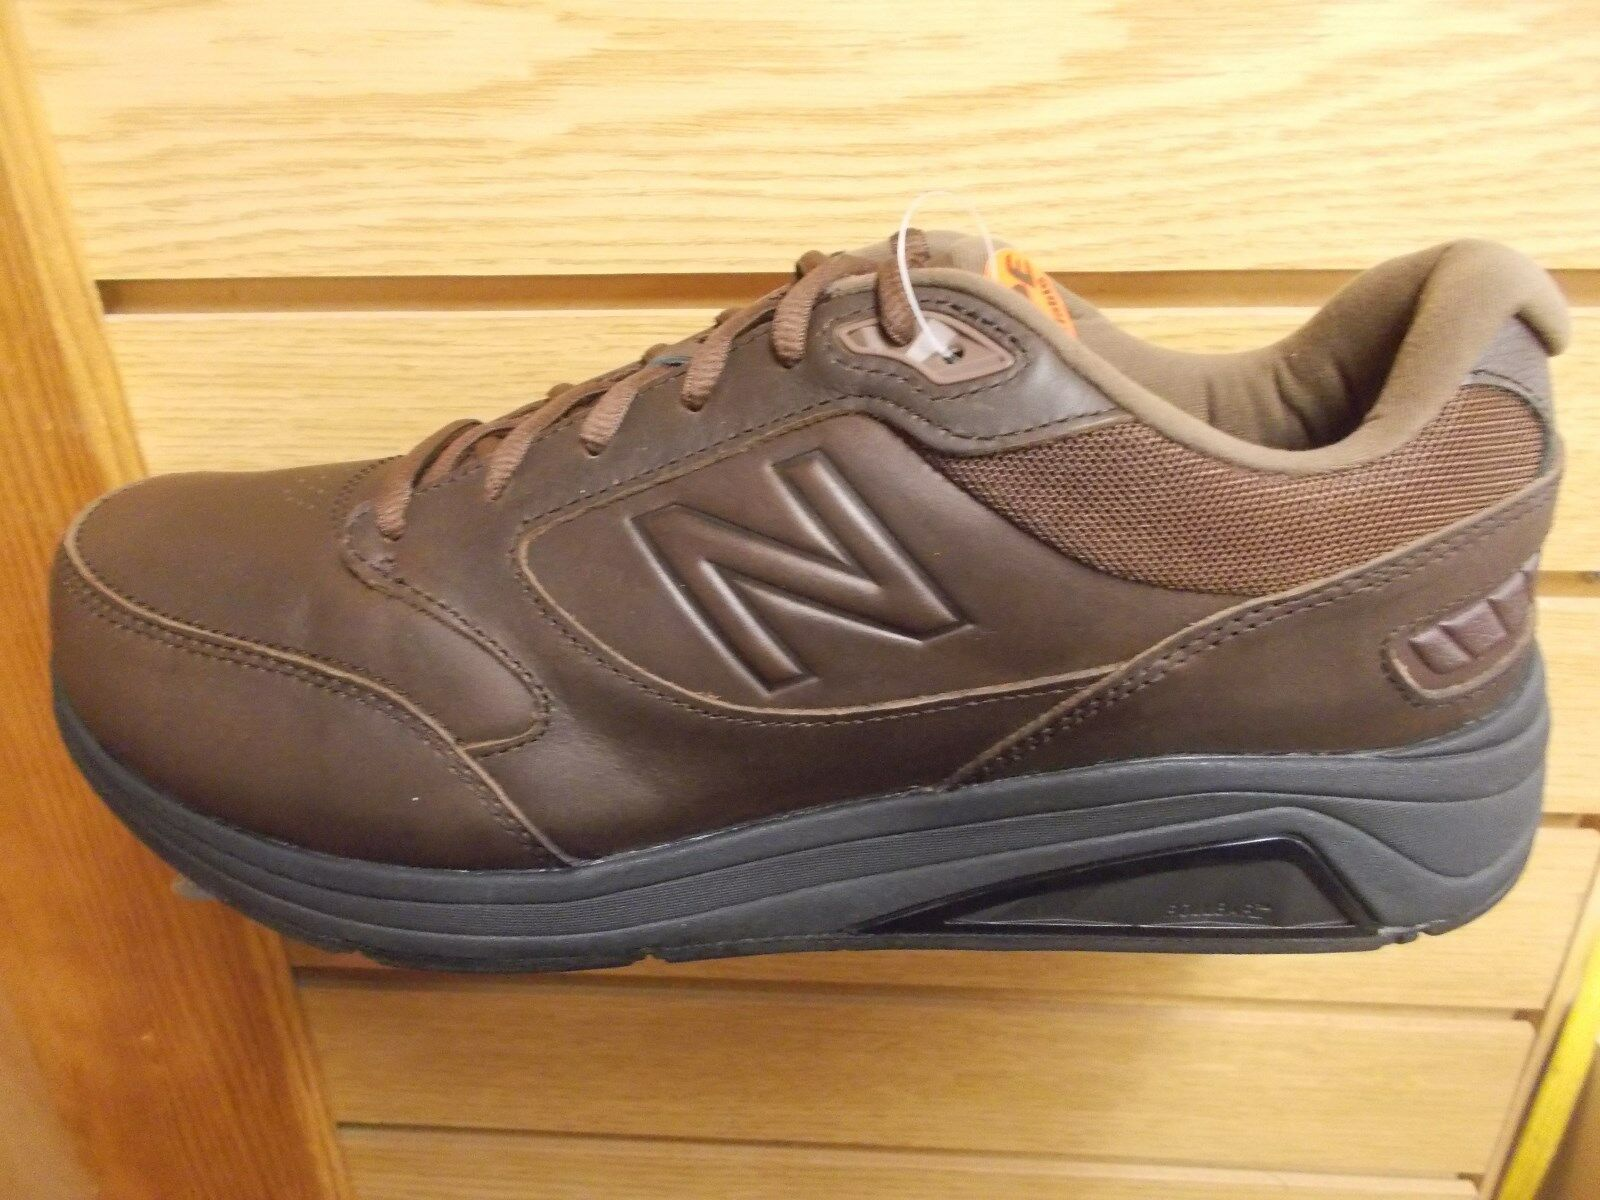 NEW BALANCE Homme MW928 BR3  Marron WALKING Chaussures V3 EXTRA WIDE 4E NEW IN BOX